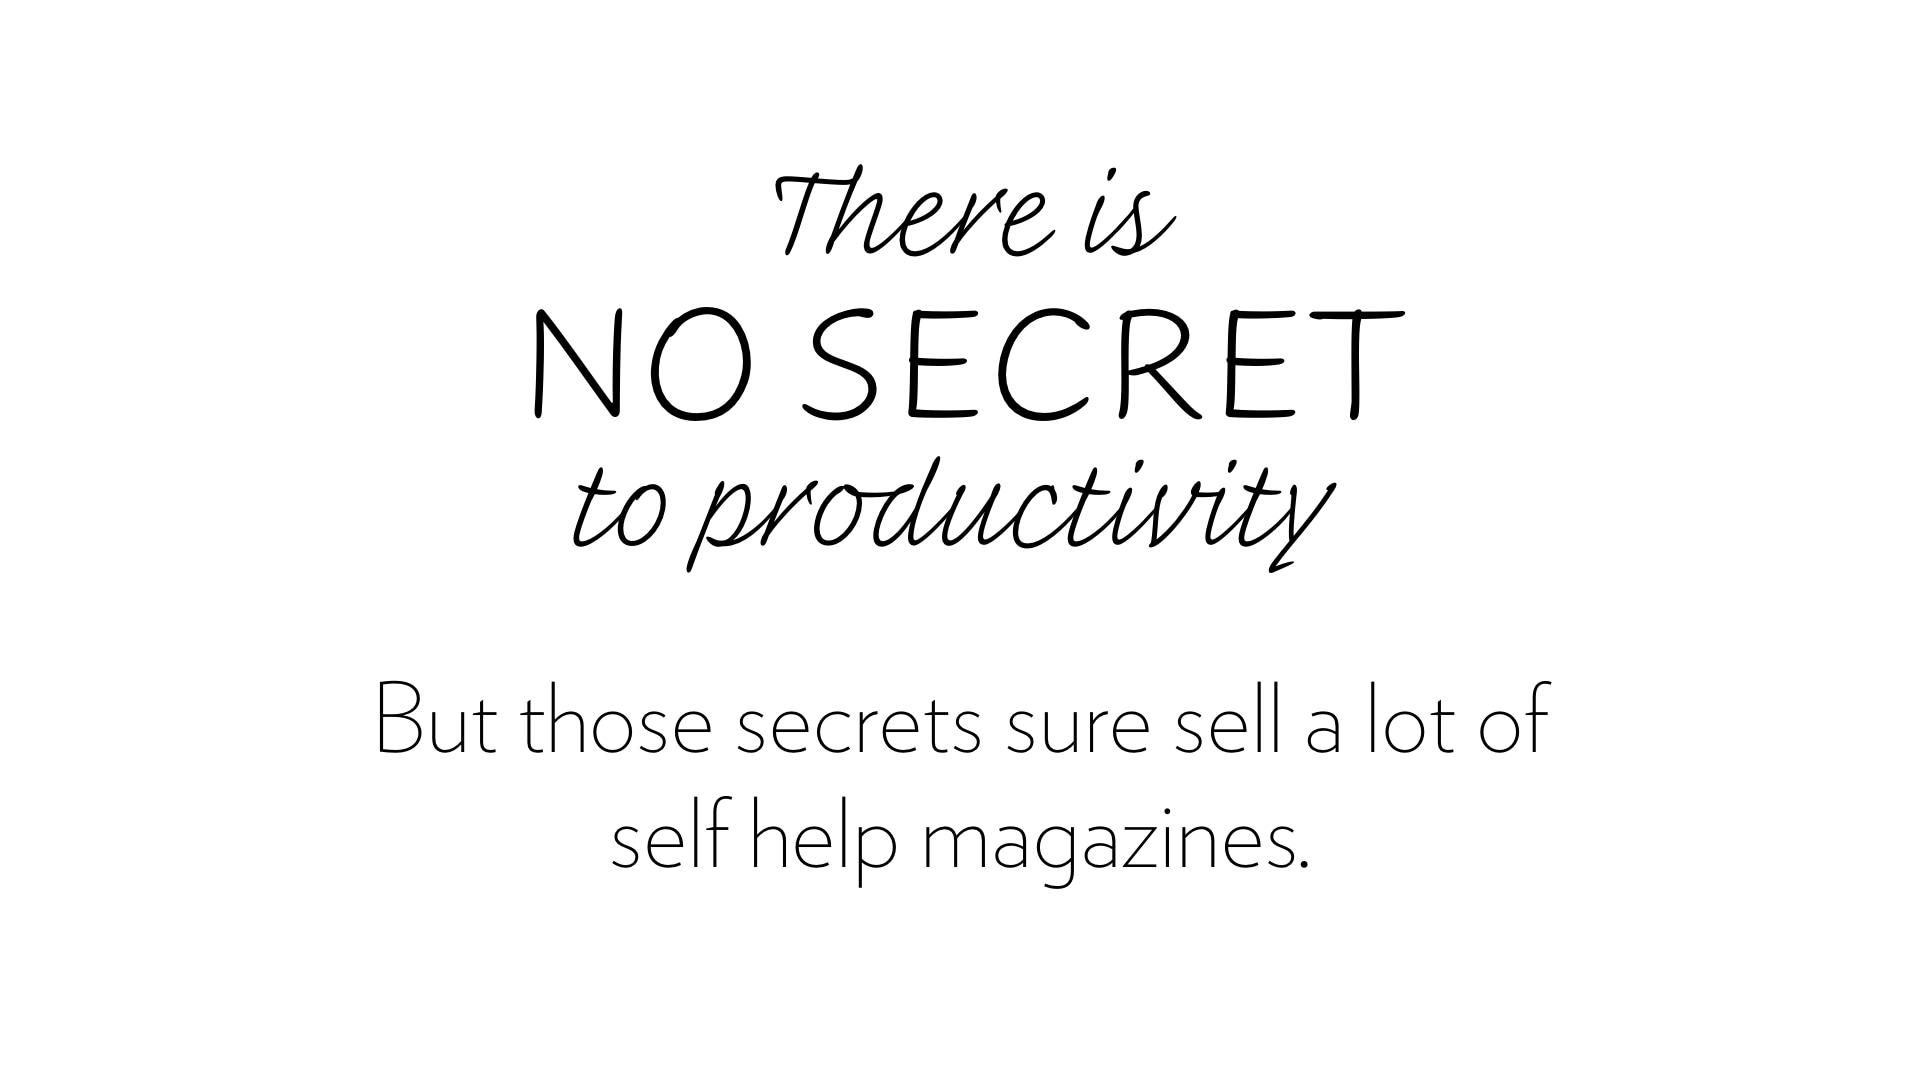 There are no secrets to productivity.